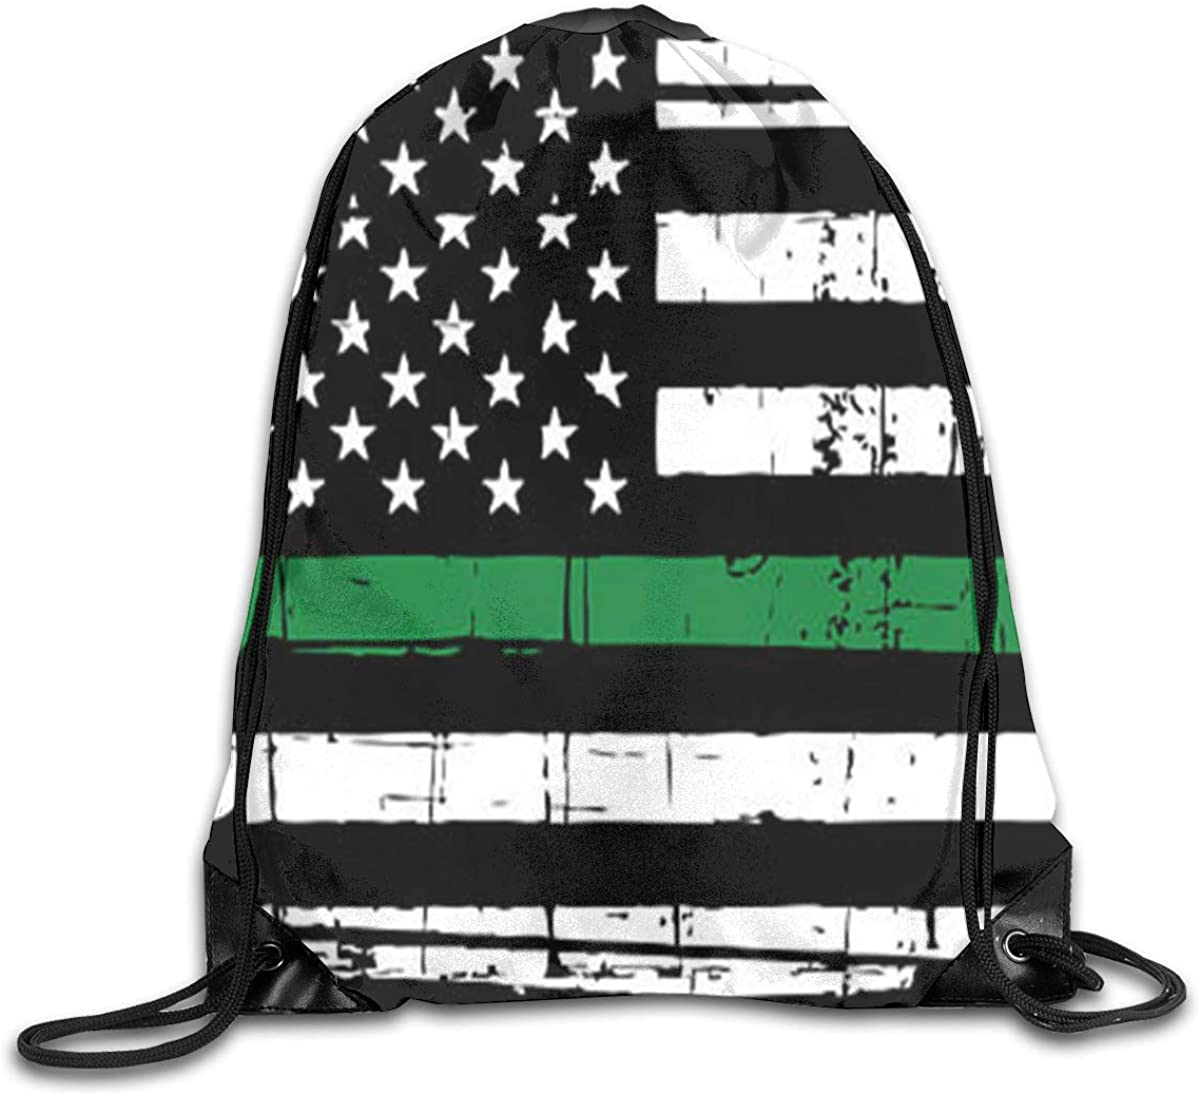 Retro American Flag Beam Mouth Backpack Pull Rope Shoulder Bag Outdoor Sports Leisure Bag